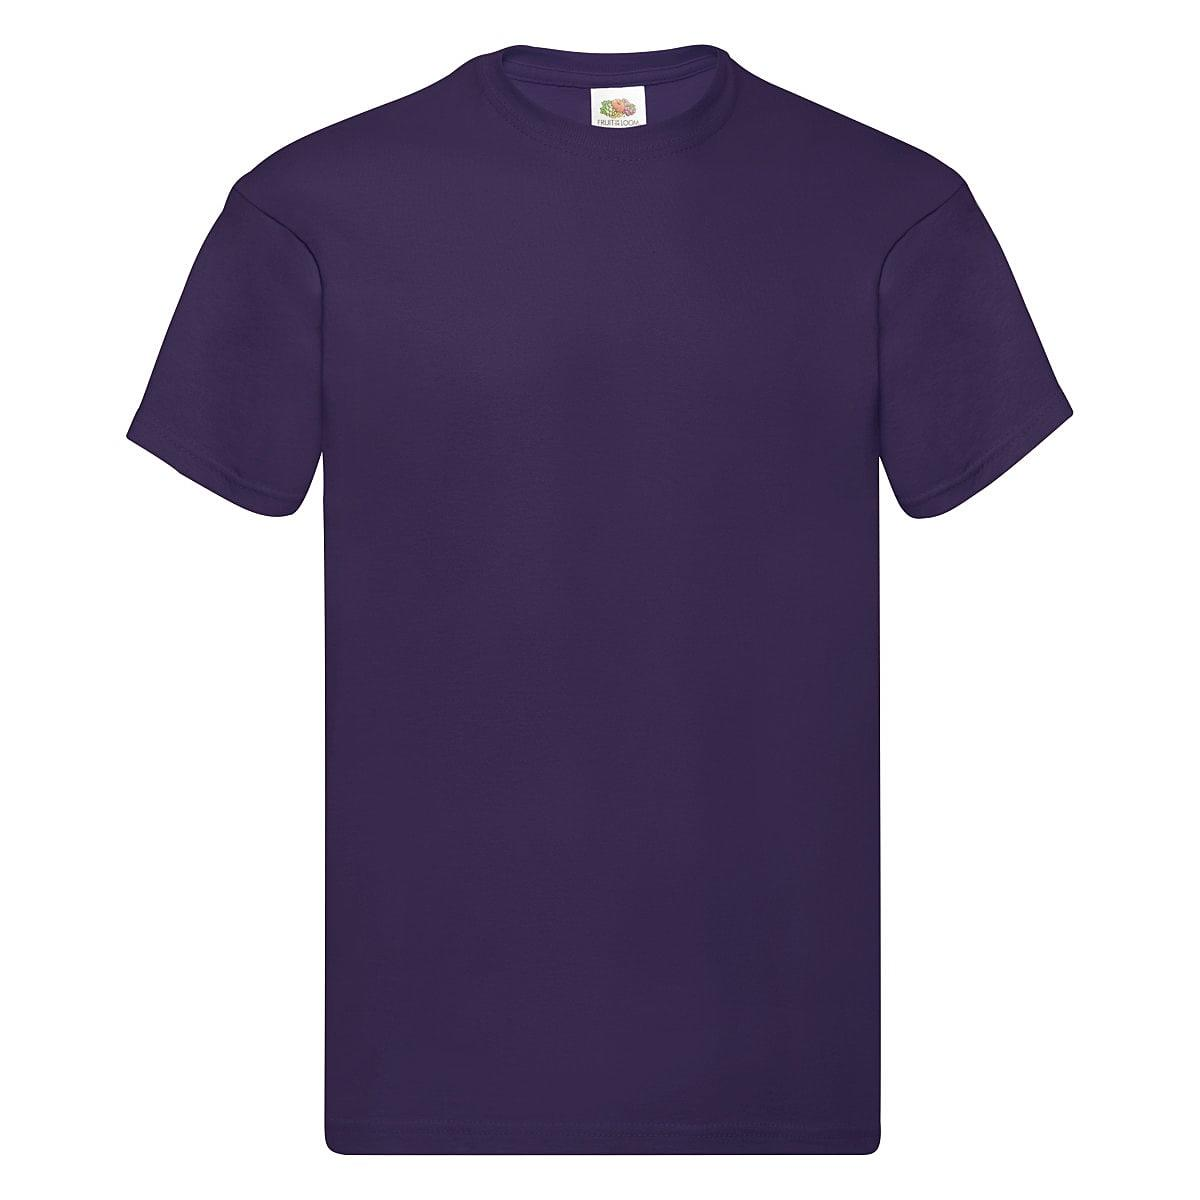 Fruit Of The Loom Original Full Cut T-Shirt in Purple (Product Code: 61082)